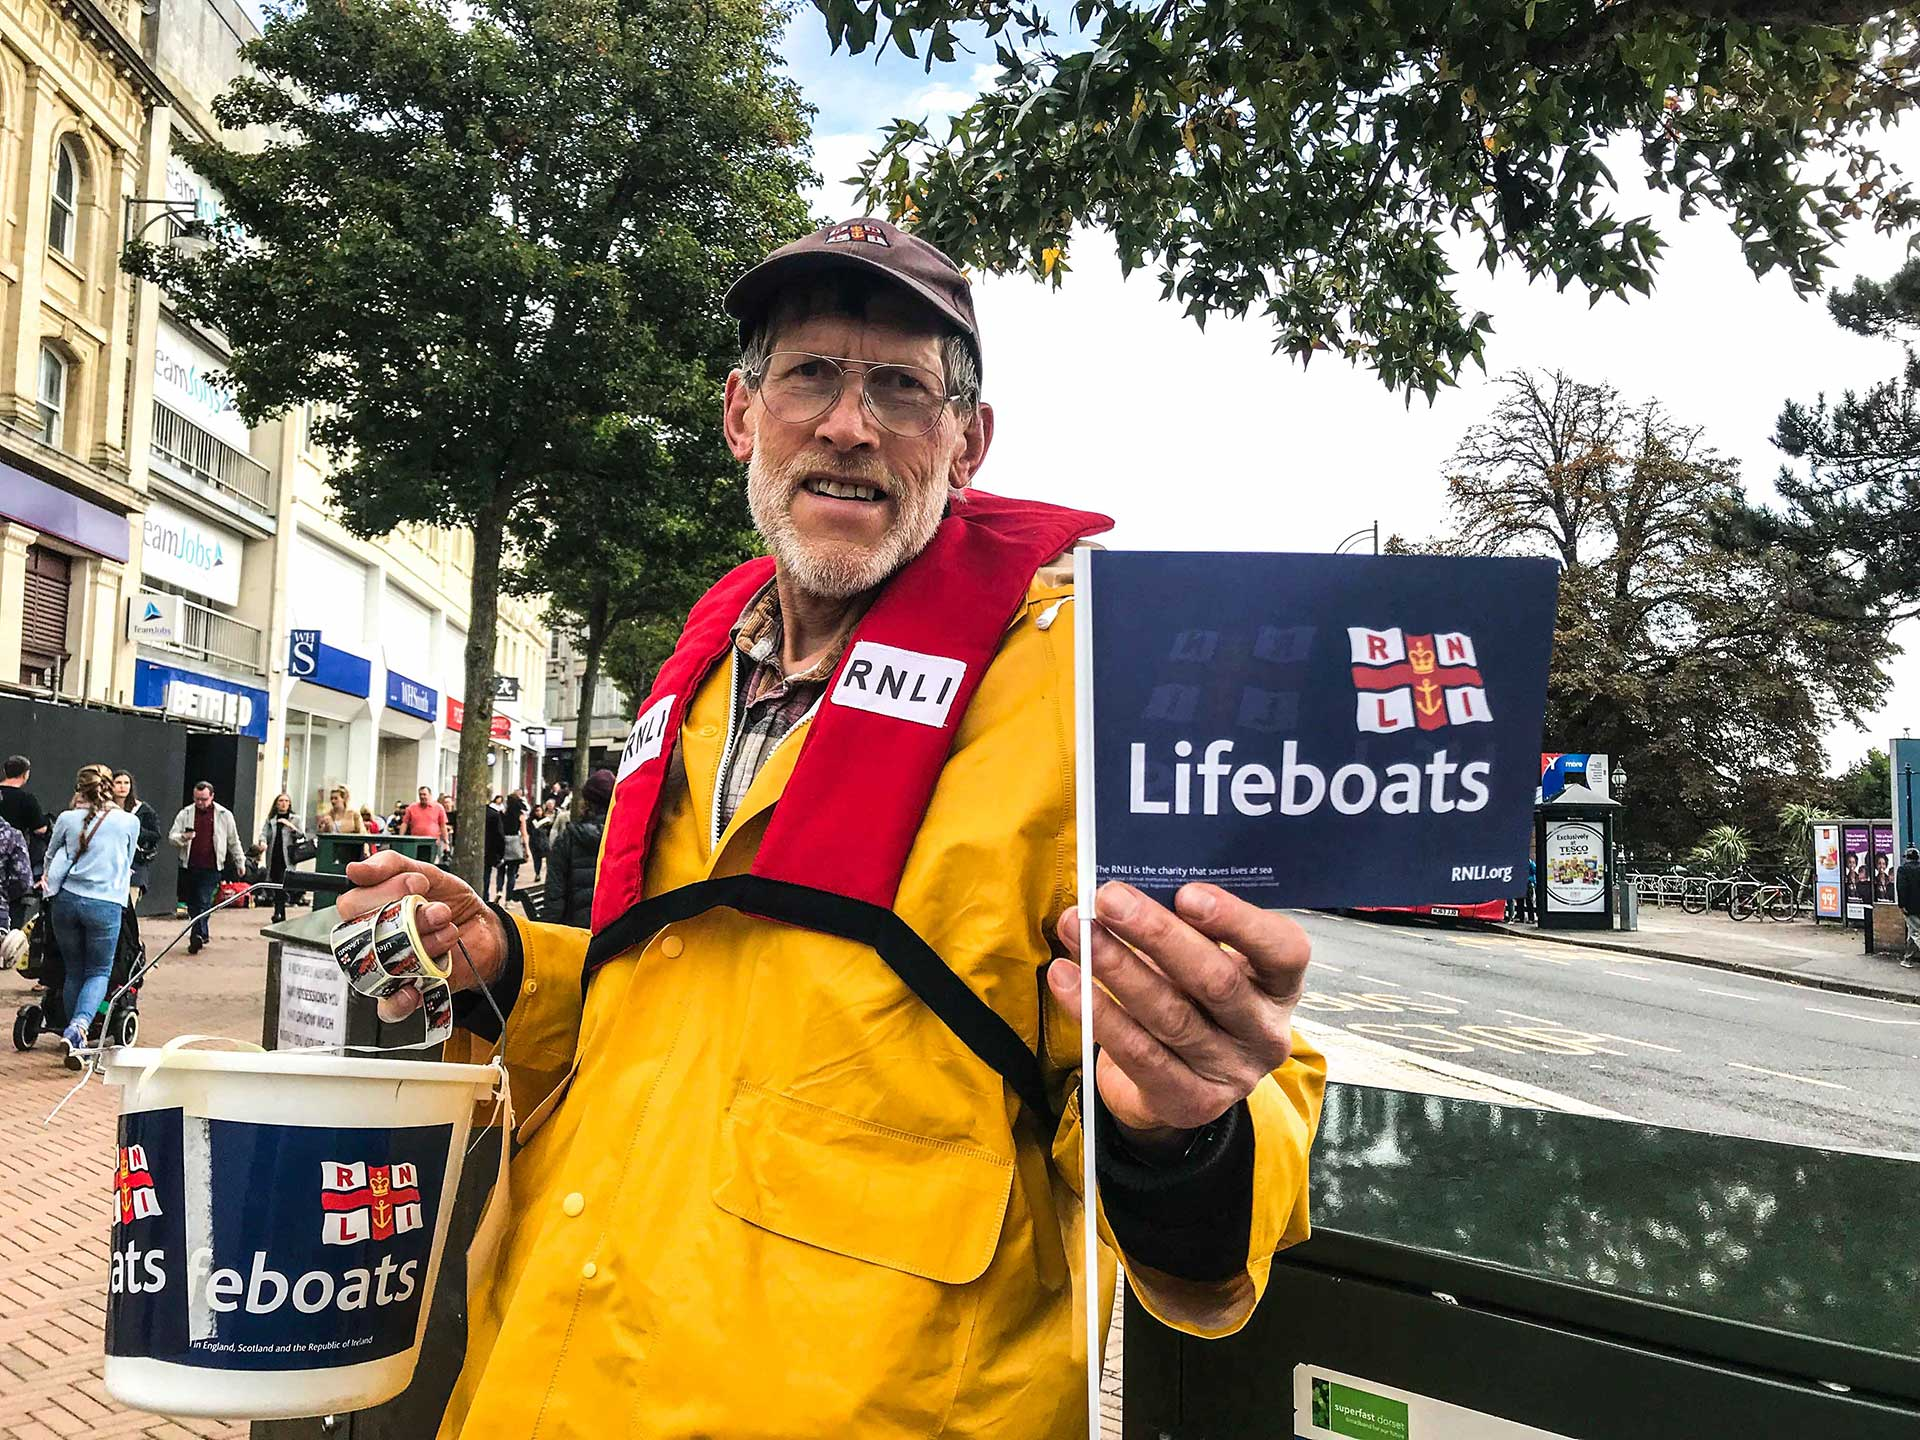 David Cox, with his Lifeboats basket and flag, always keep his smile and warmly welcome the passers-by on the street